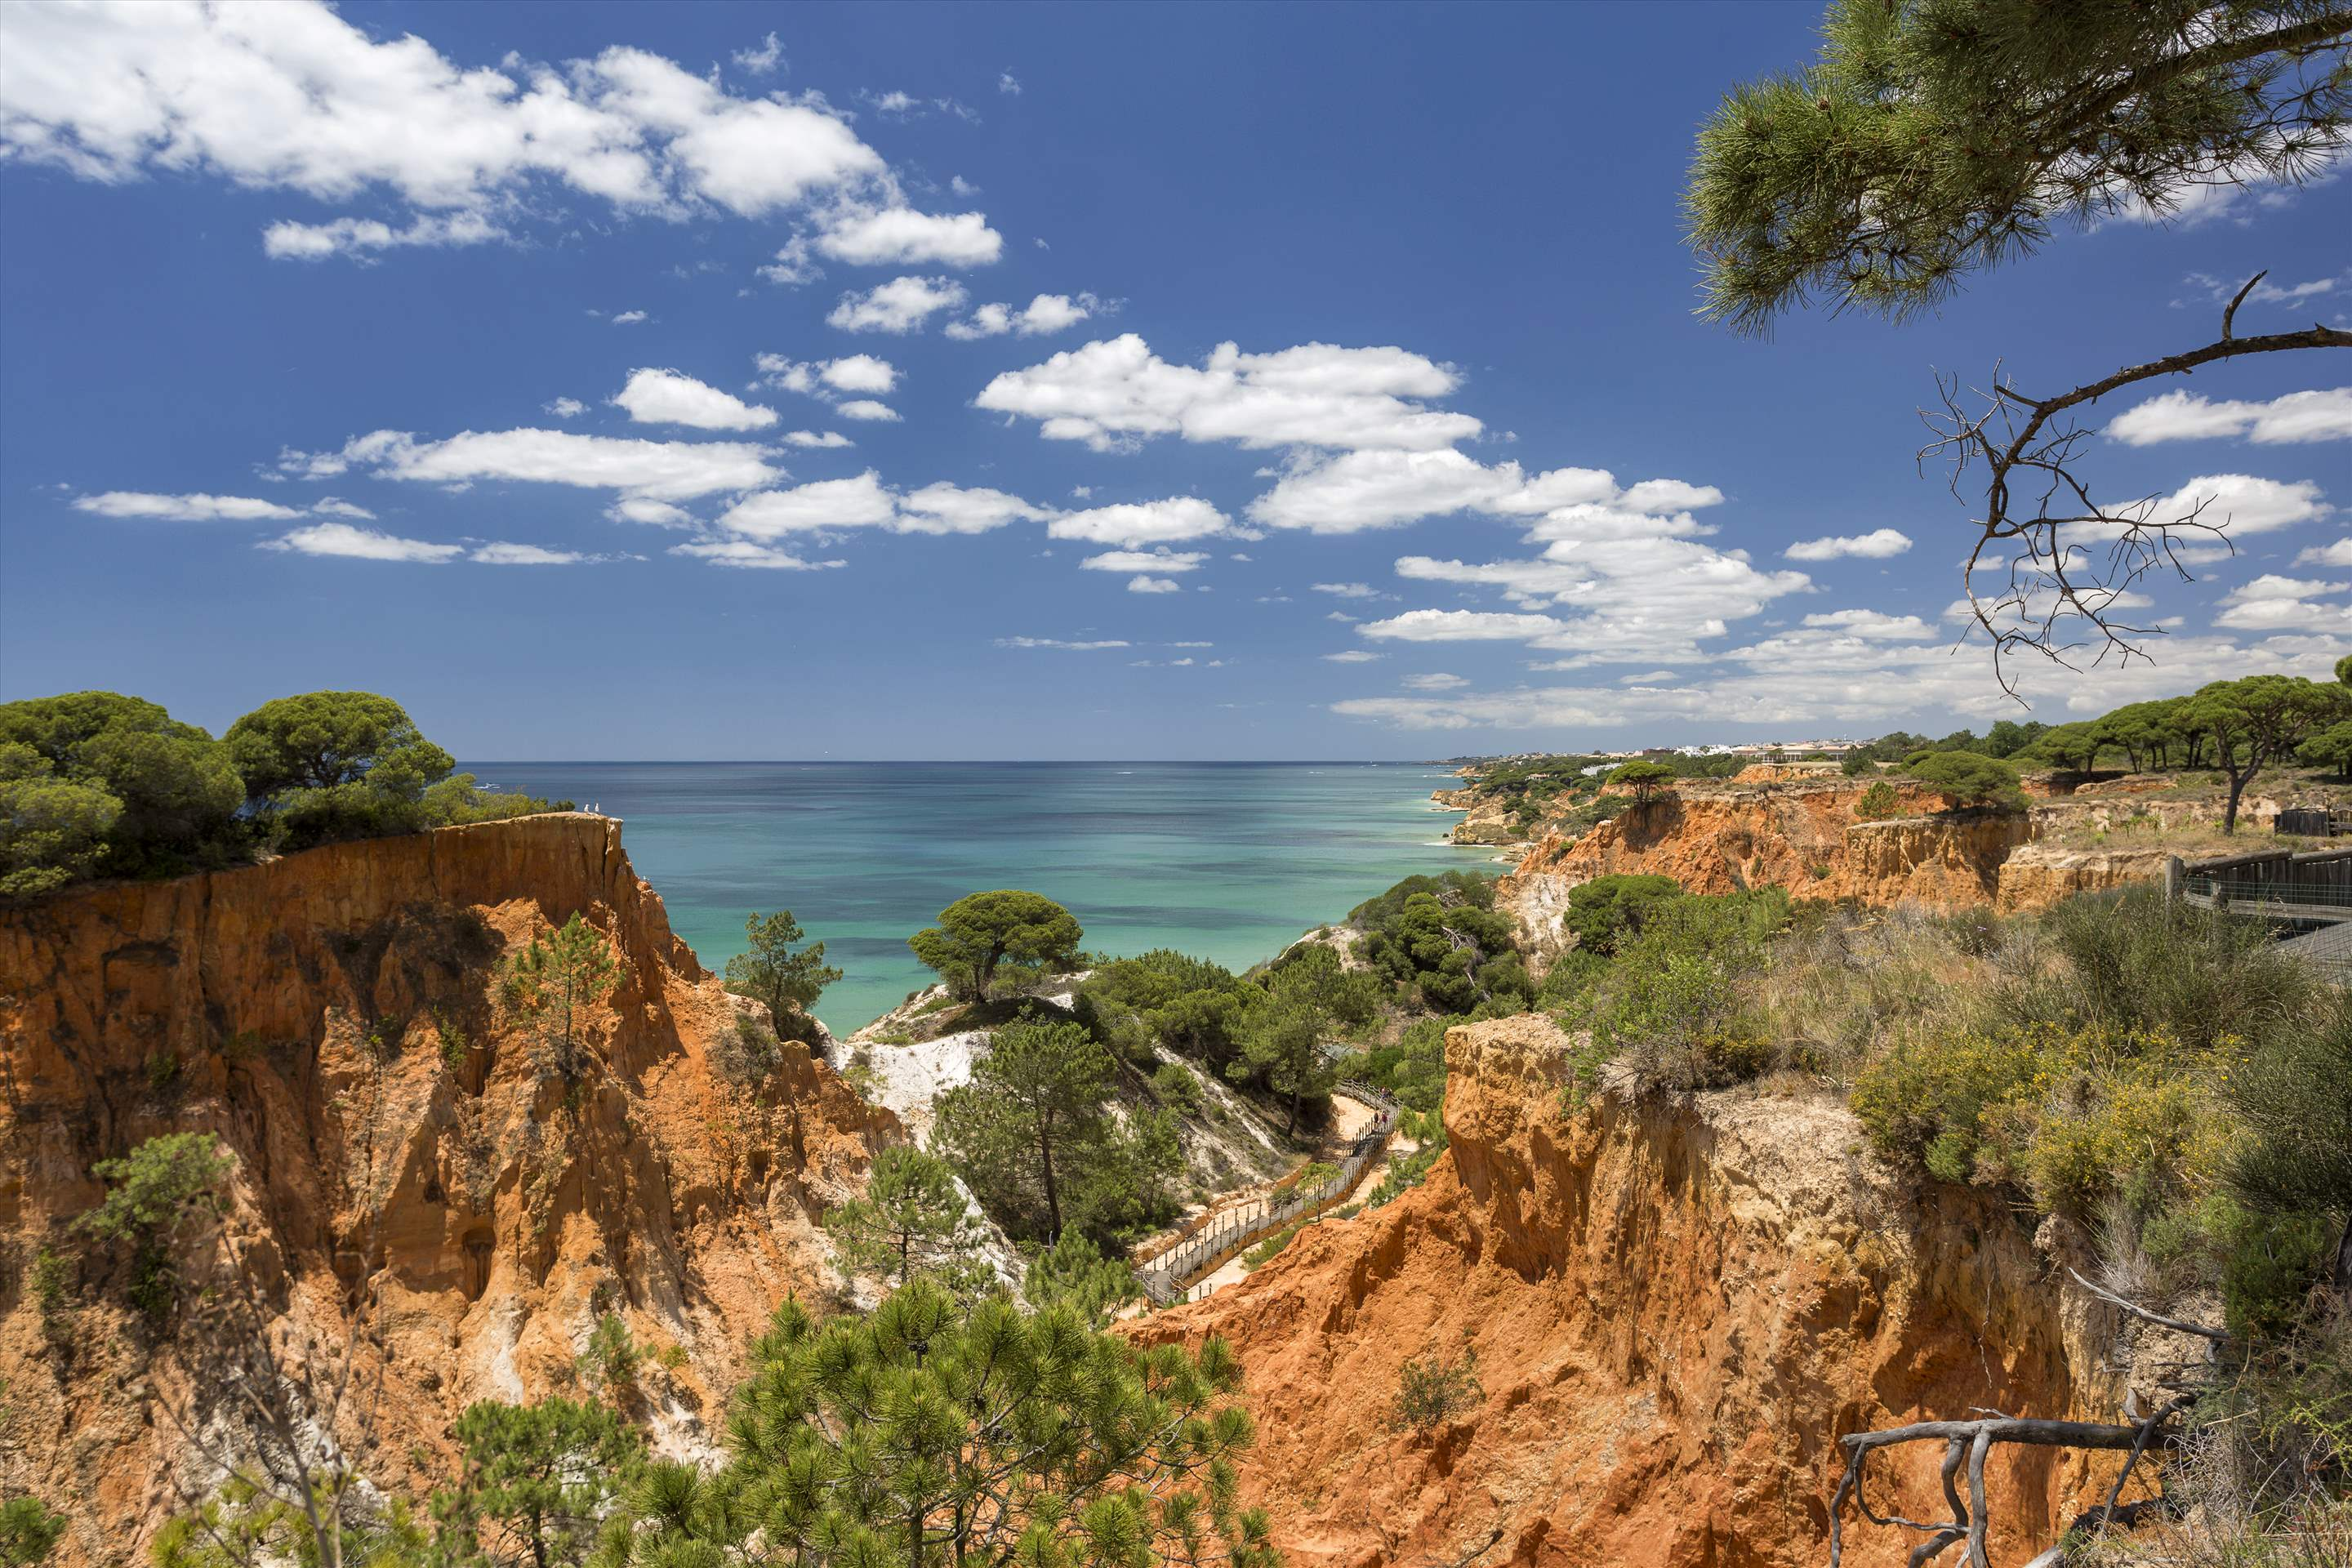 Pine Cliffs Gardens, Two Bedroom Suite, S/C Basis, 2 bedroom apartment in Pine Cliffs Resort, Algarve Photo #24